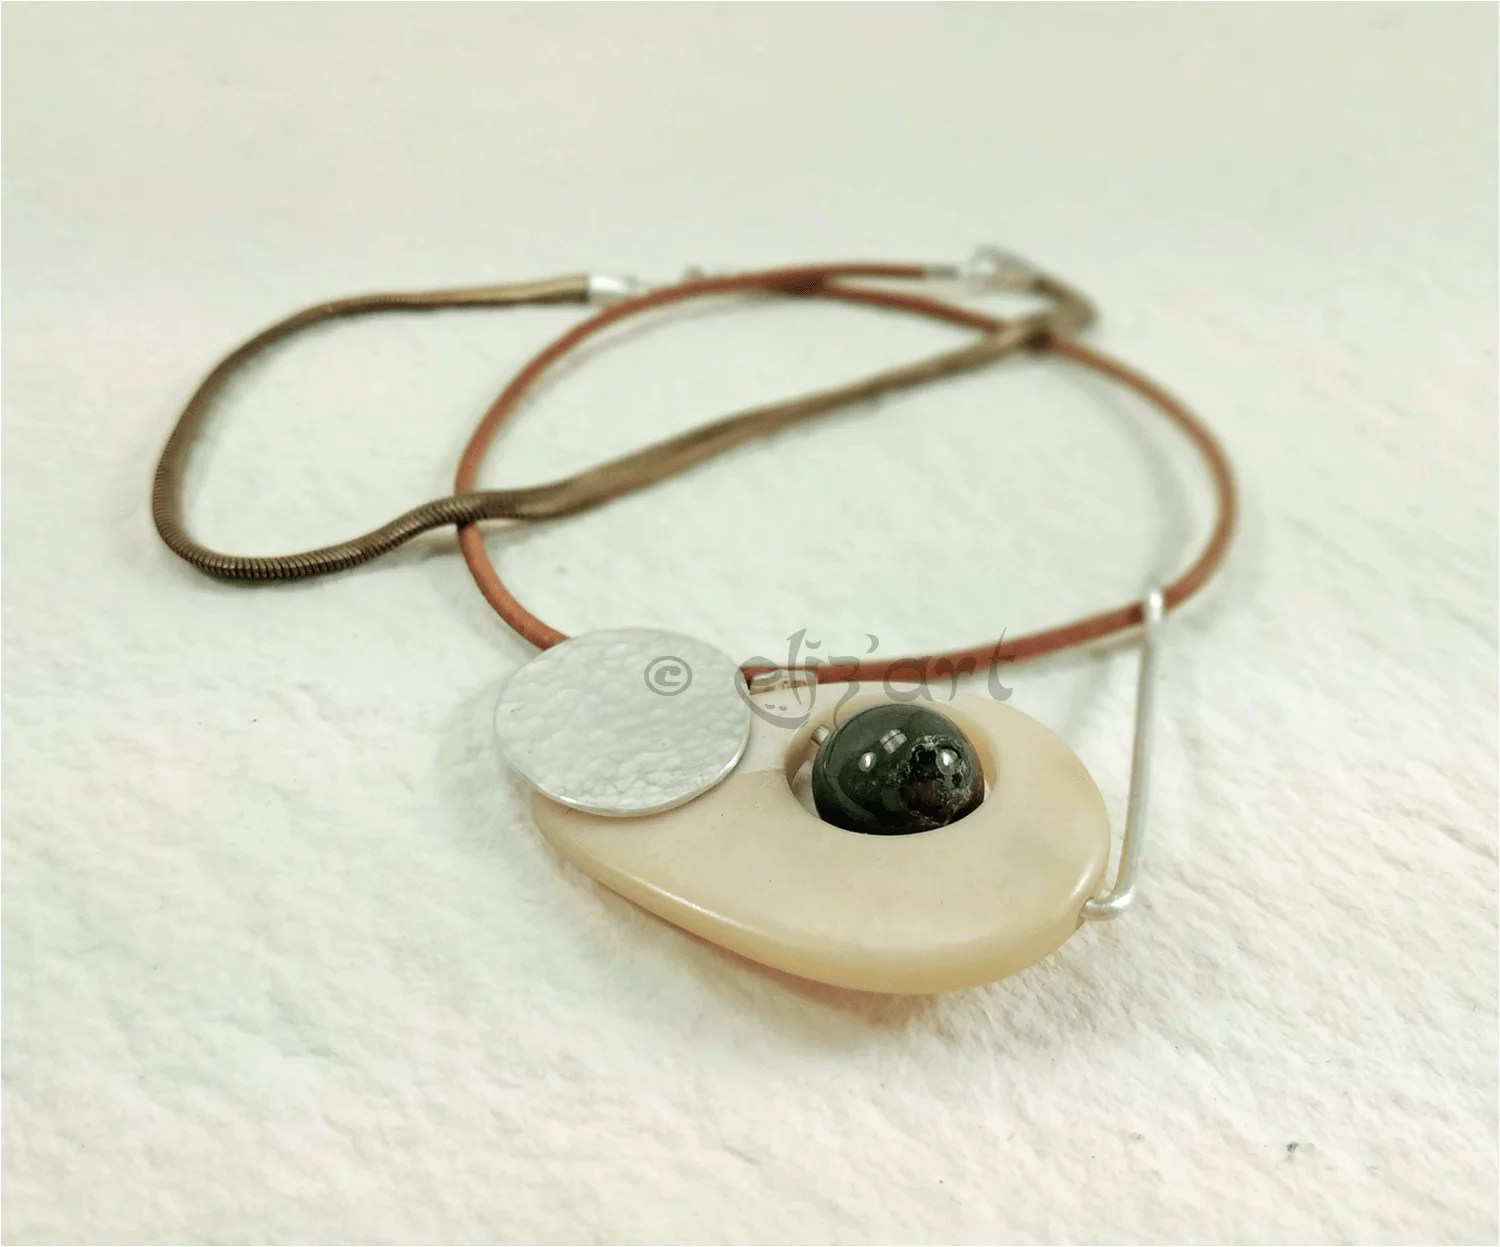 Art jewelry, silver, jade and tagua (vegetal ivory) by Eliz'art